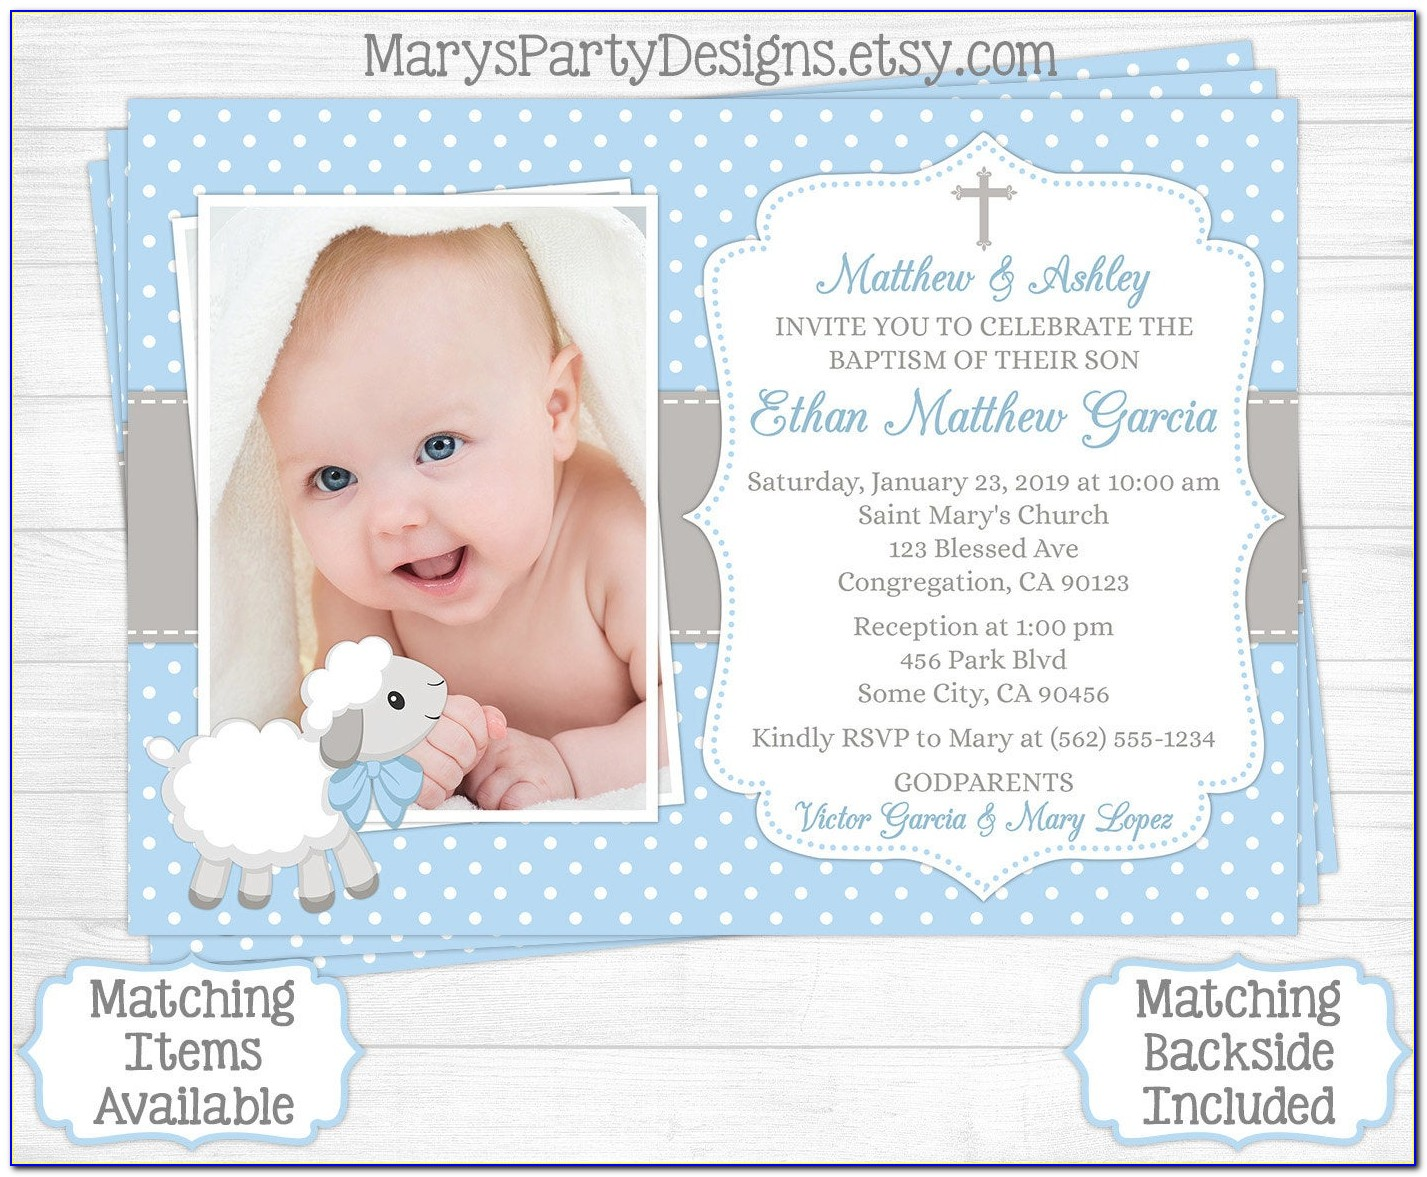 Baptismal Invitation For Baby Boy With Godparents